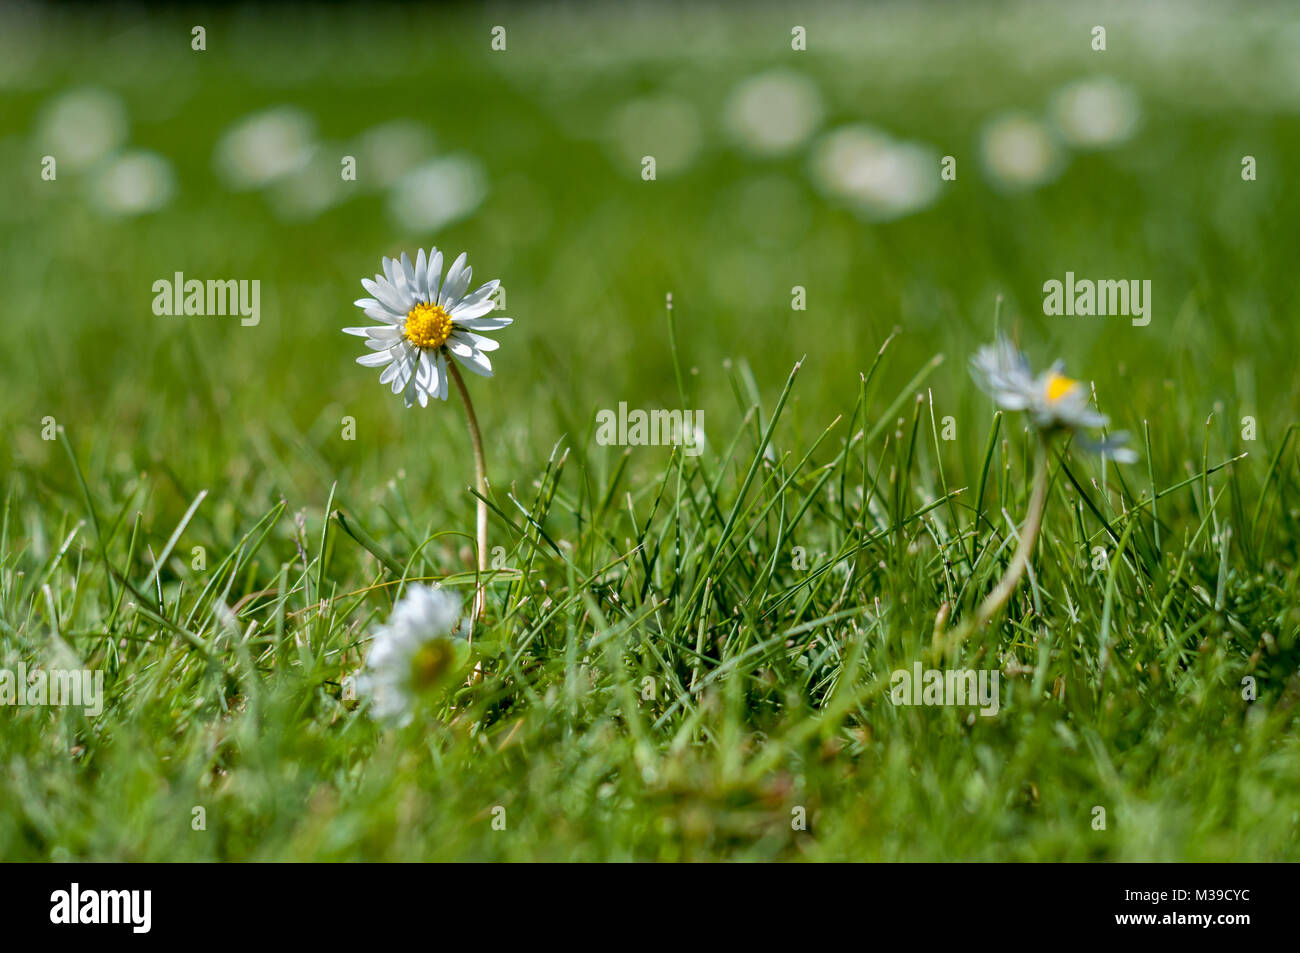 White and yellow daisies in the grass - close up - low depth of field - Stock Image